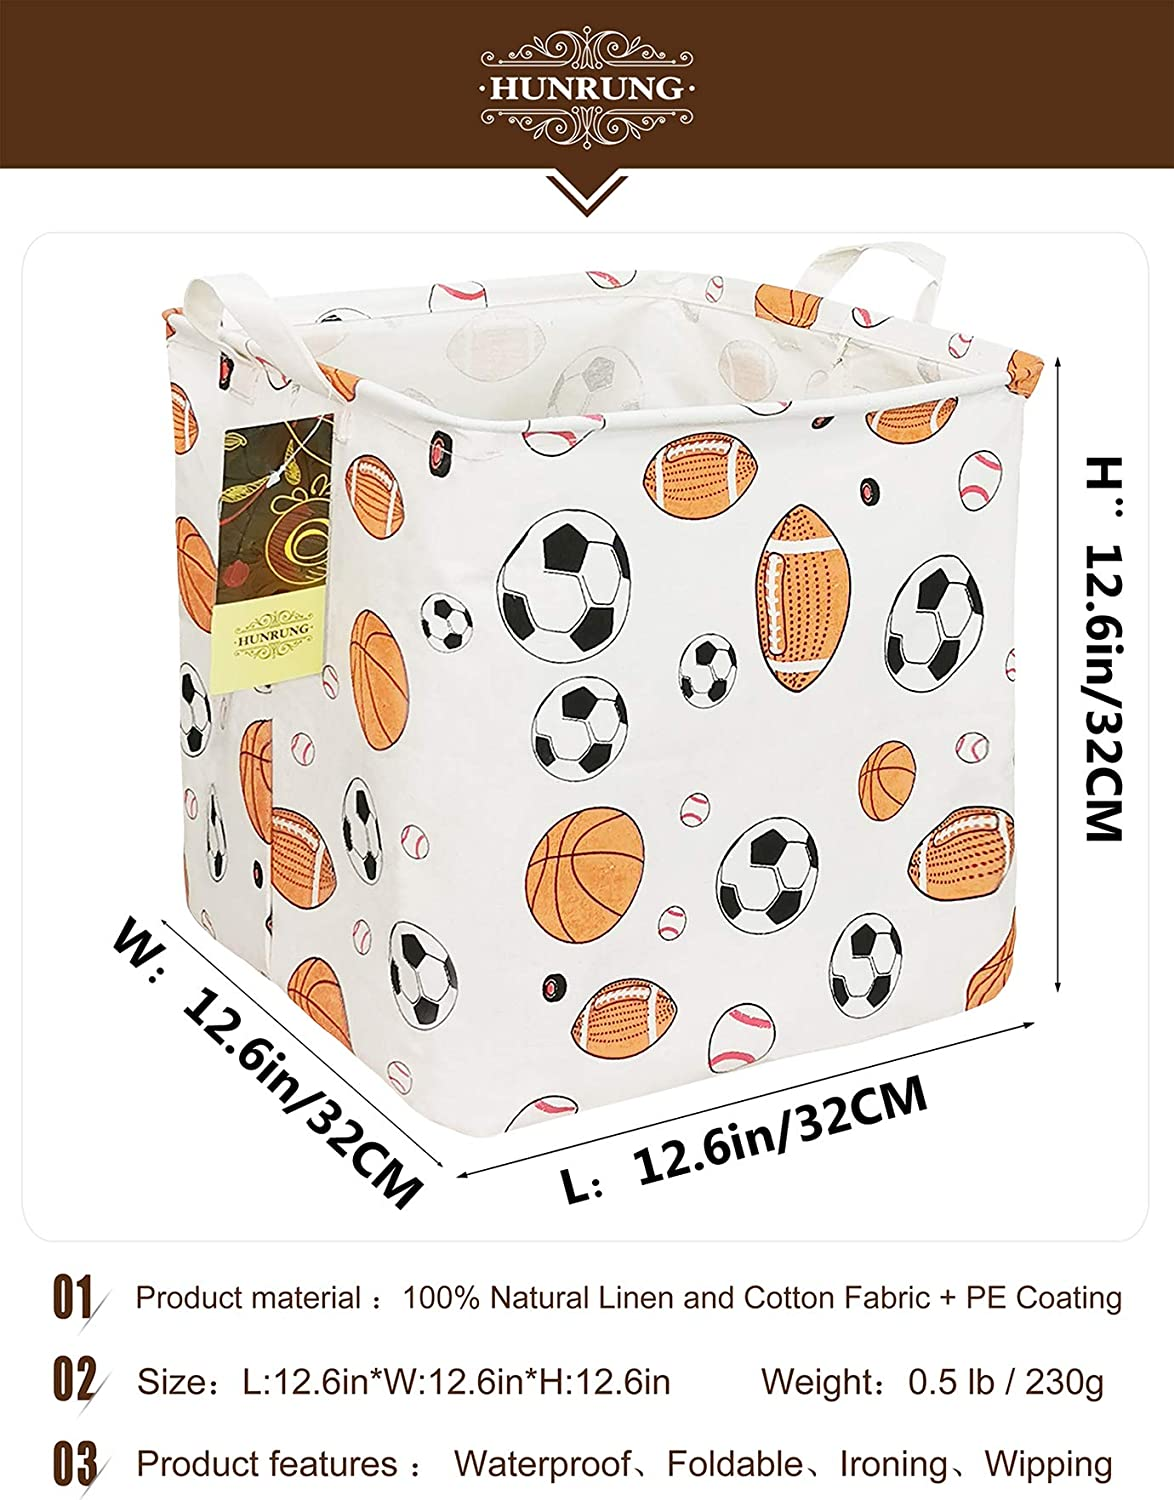 Square-Ball Game Bedroom HUNRUNG Square Storage Bins Nursery Hamper Canvas Laundry Basket Foldable with Waterproof Nursery Boxes for Shelves//Gift Baskets//Toy Organizer//Office